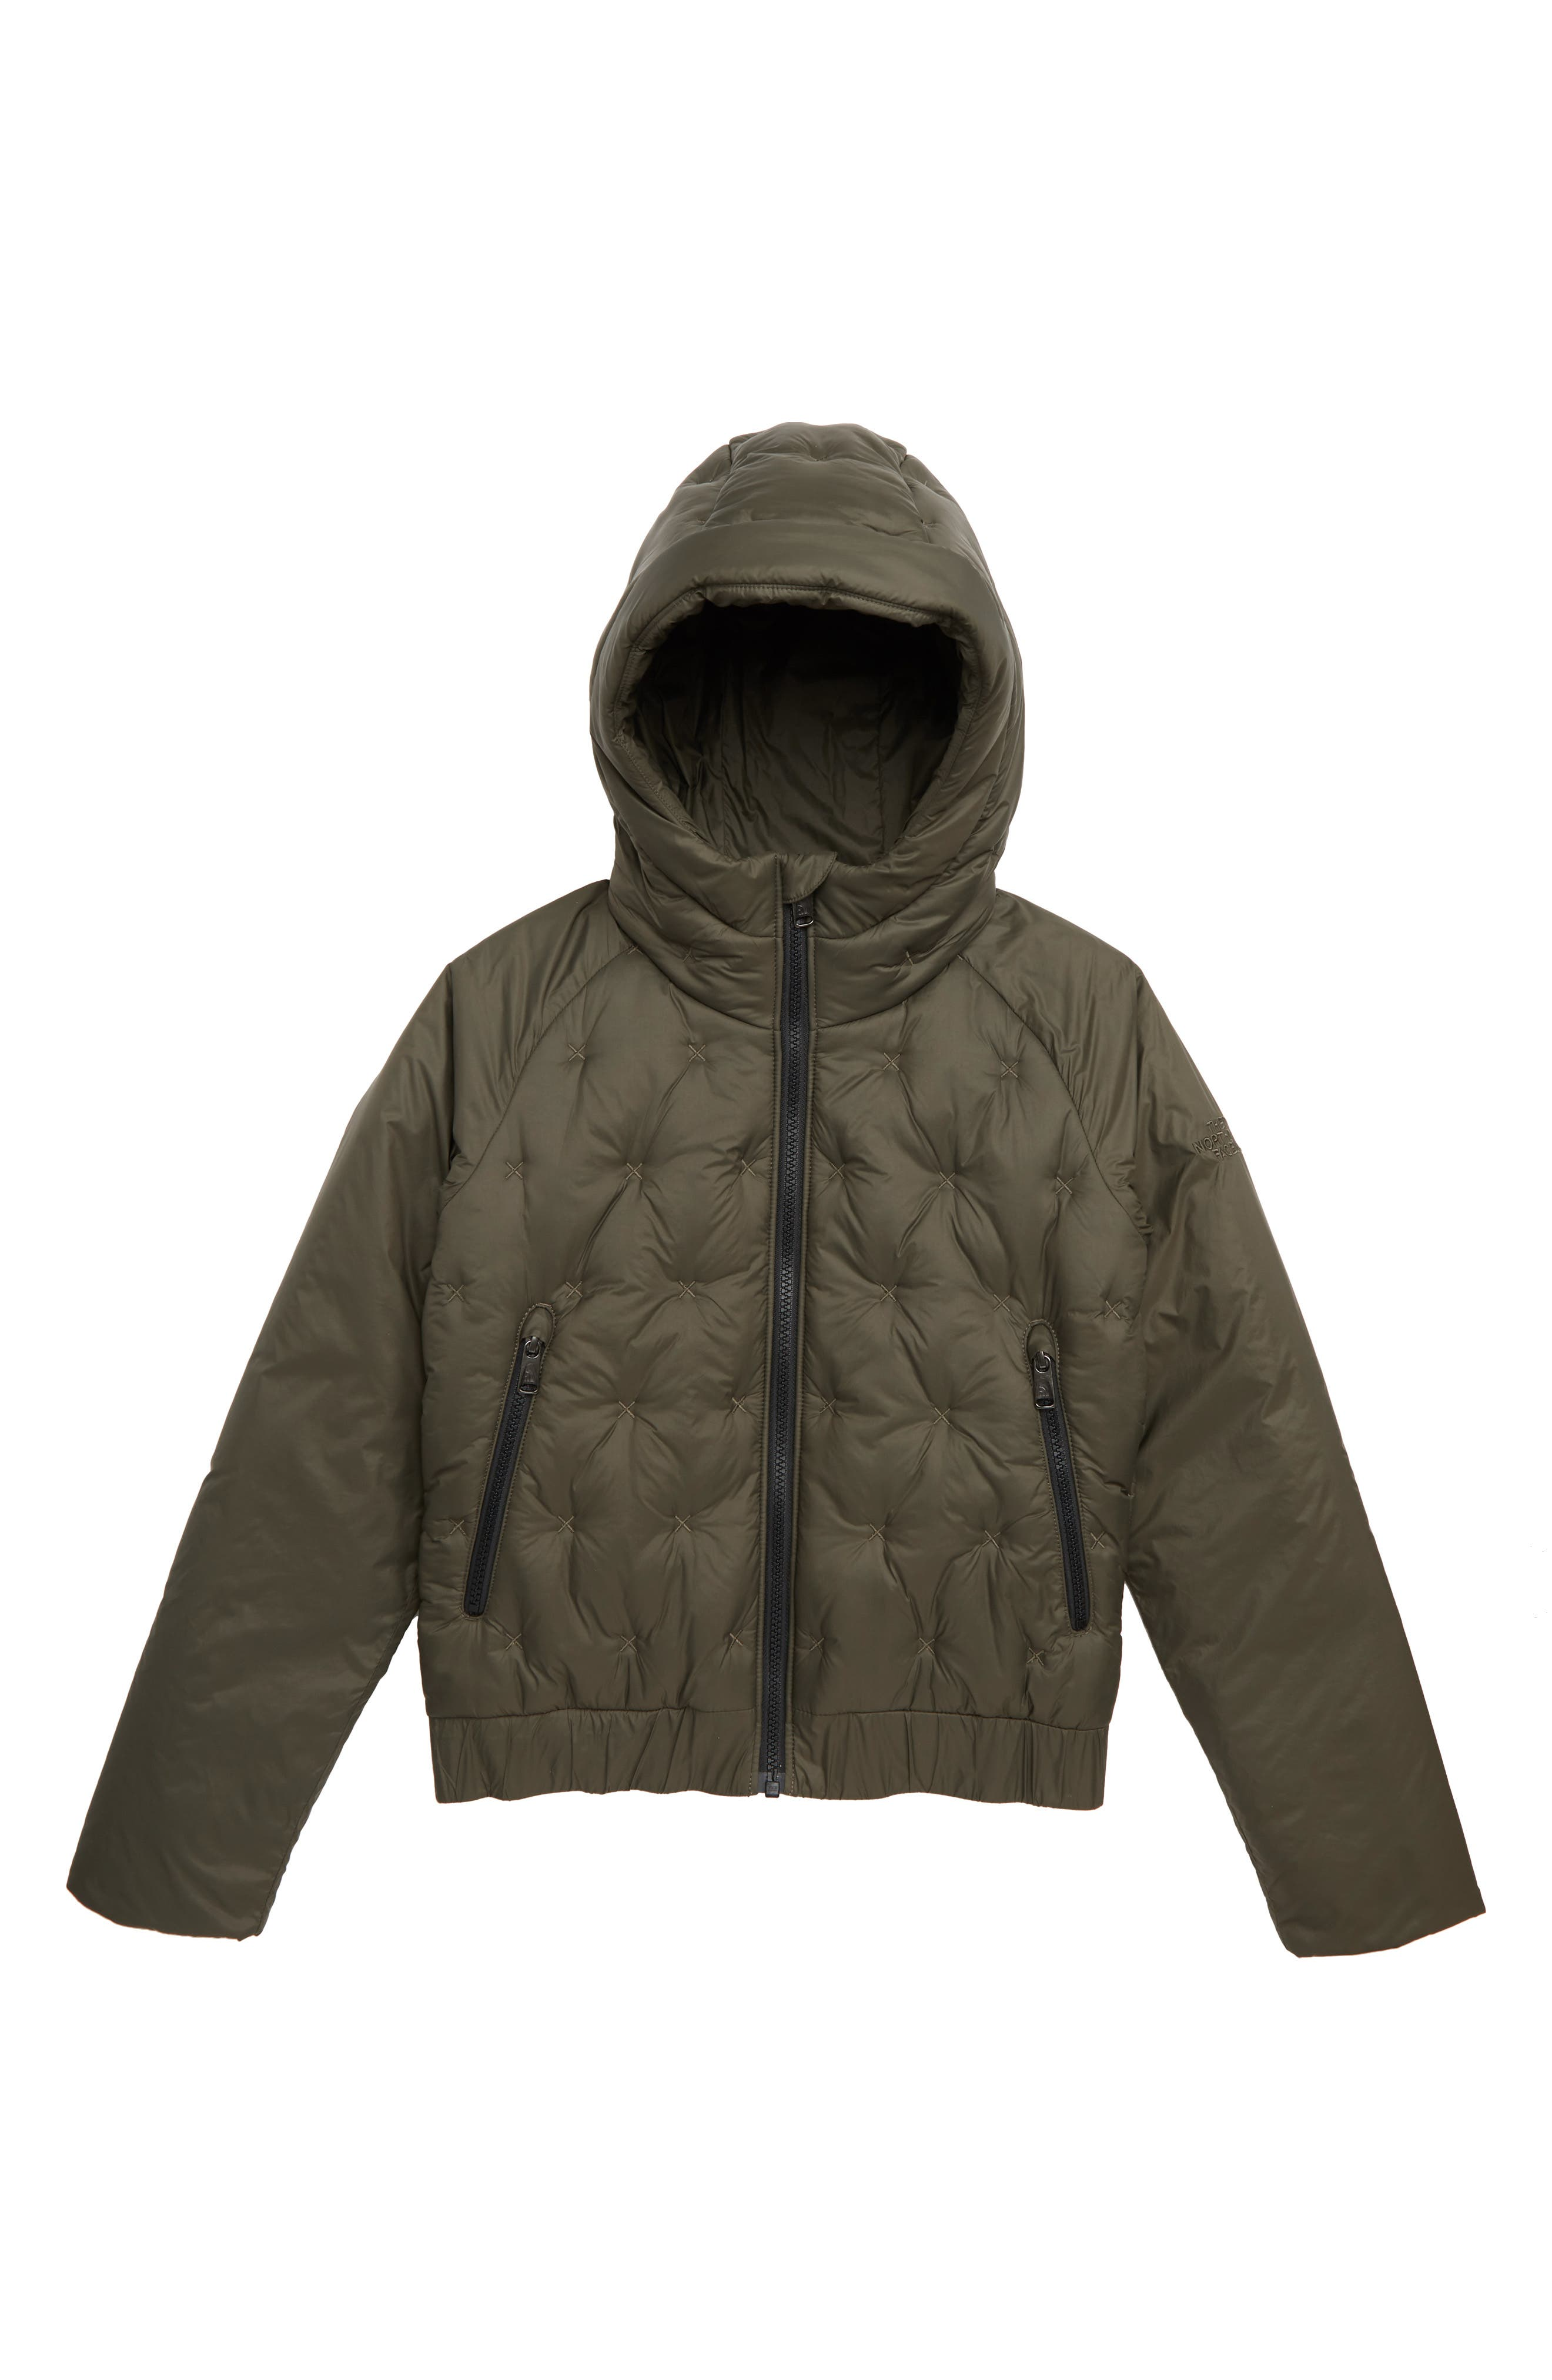 Moondoggy 2.0 Water Repellent Down Jacket,                         Main,                         color, NEW TAUPE GREEN